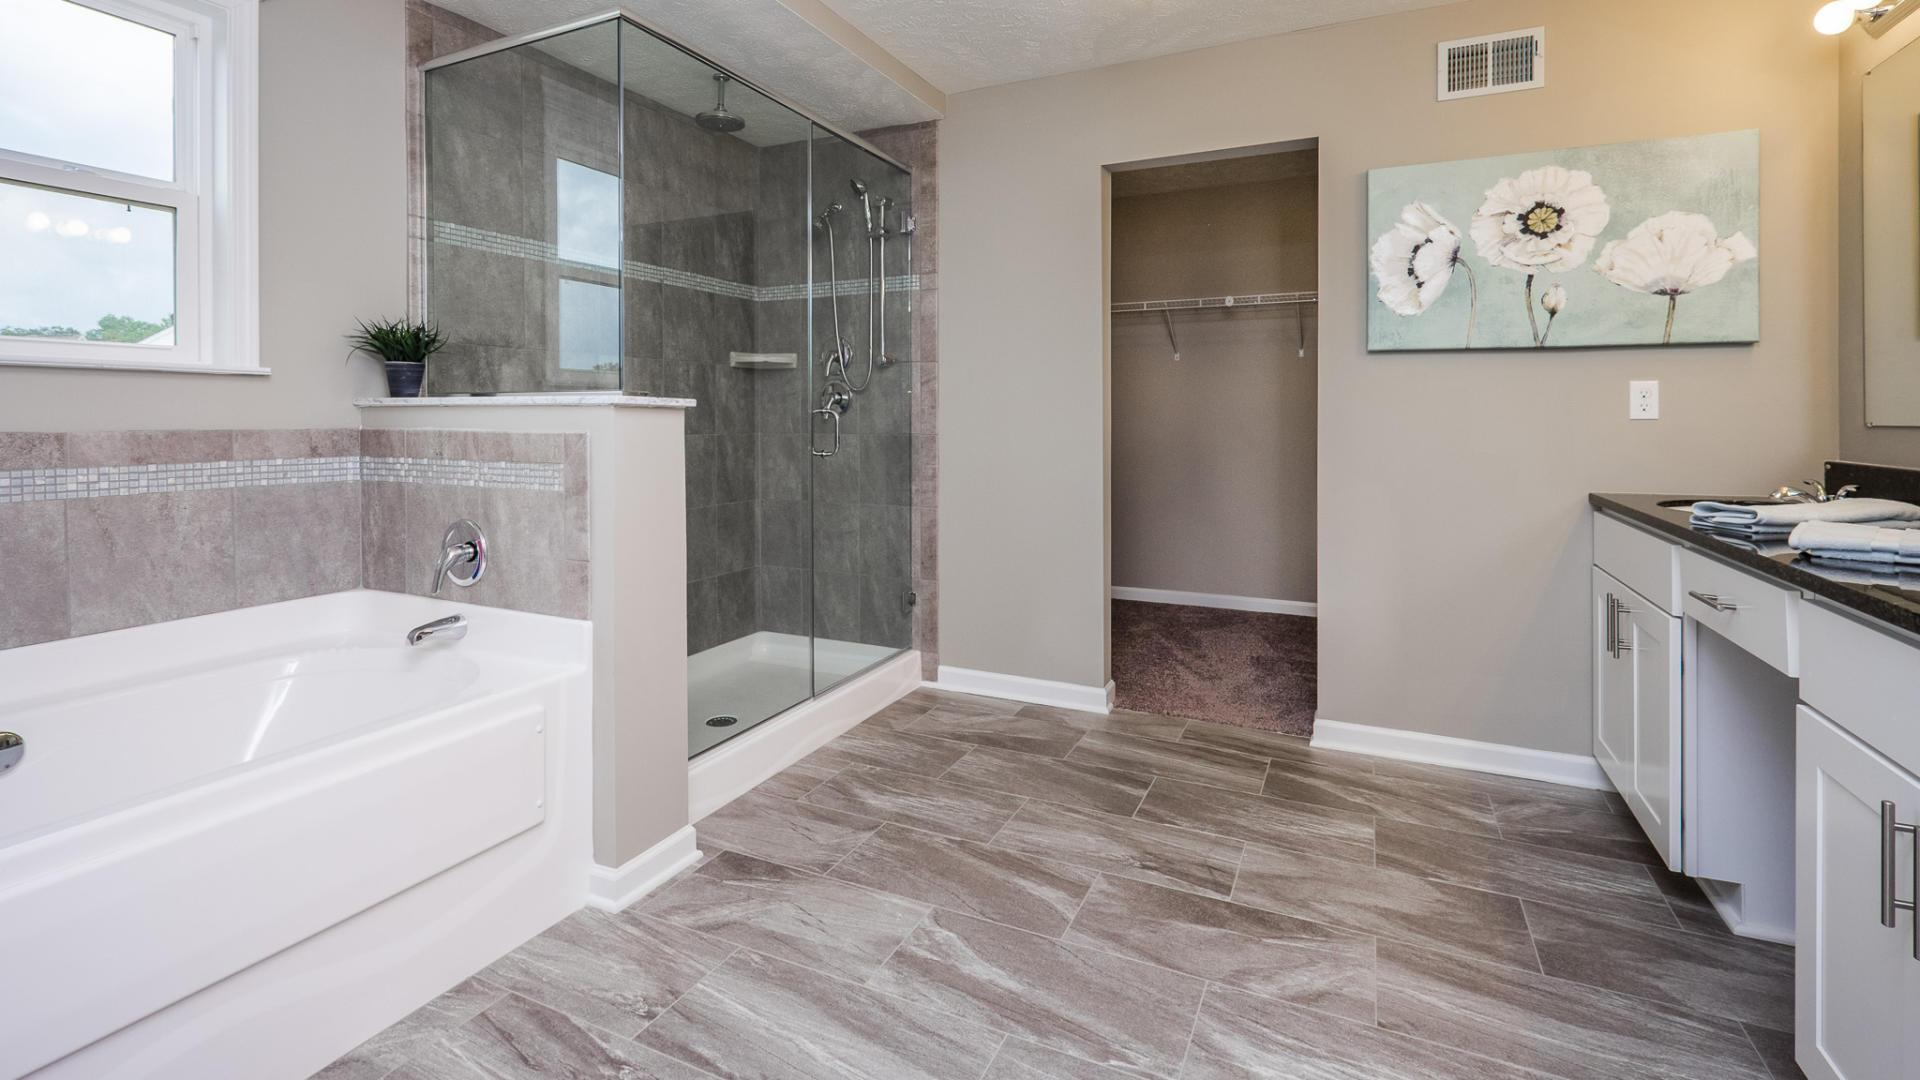 Bathroom featured in the Tucson By Maronda Homes in Pittsburgh, PA